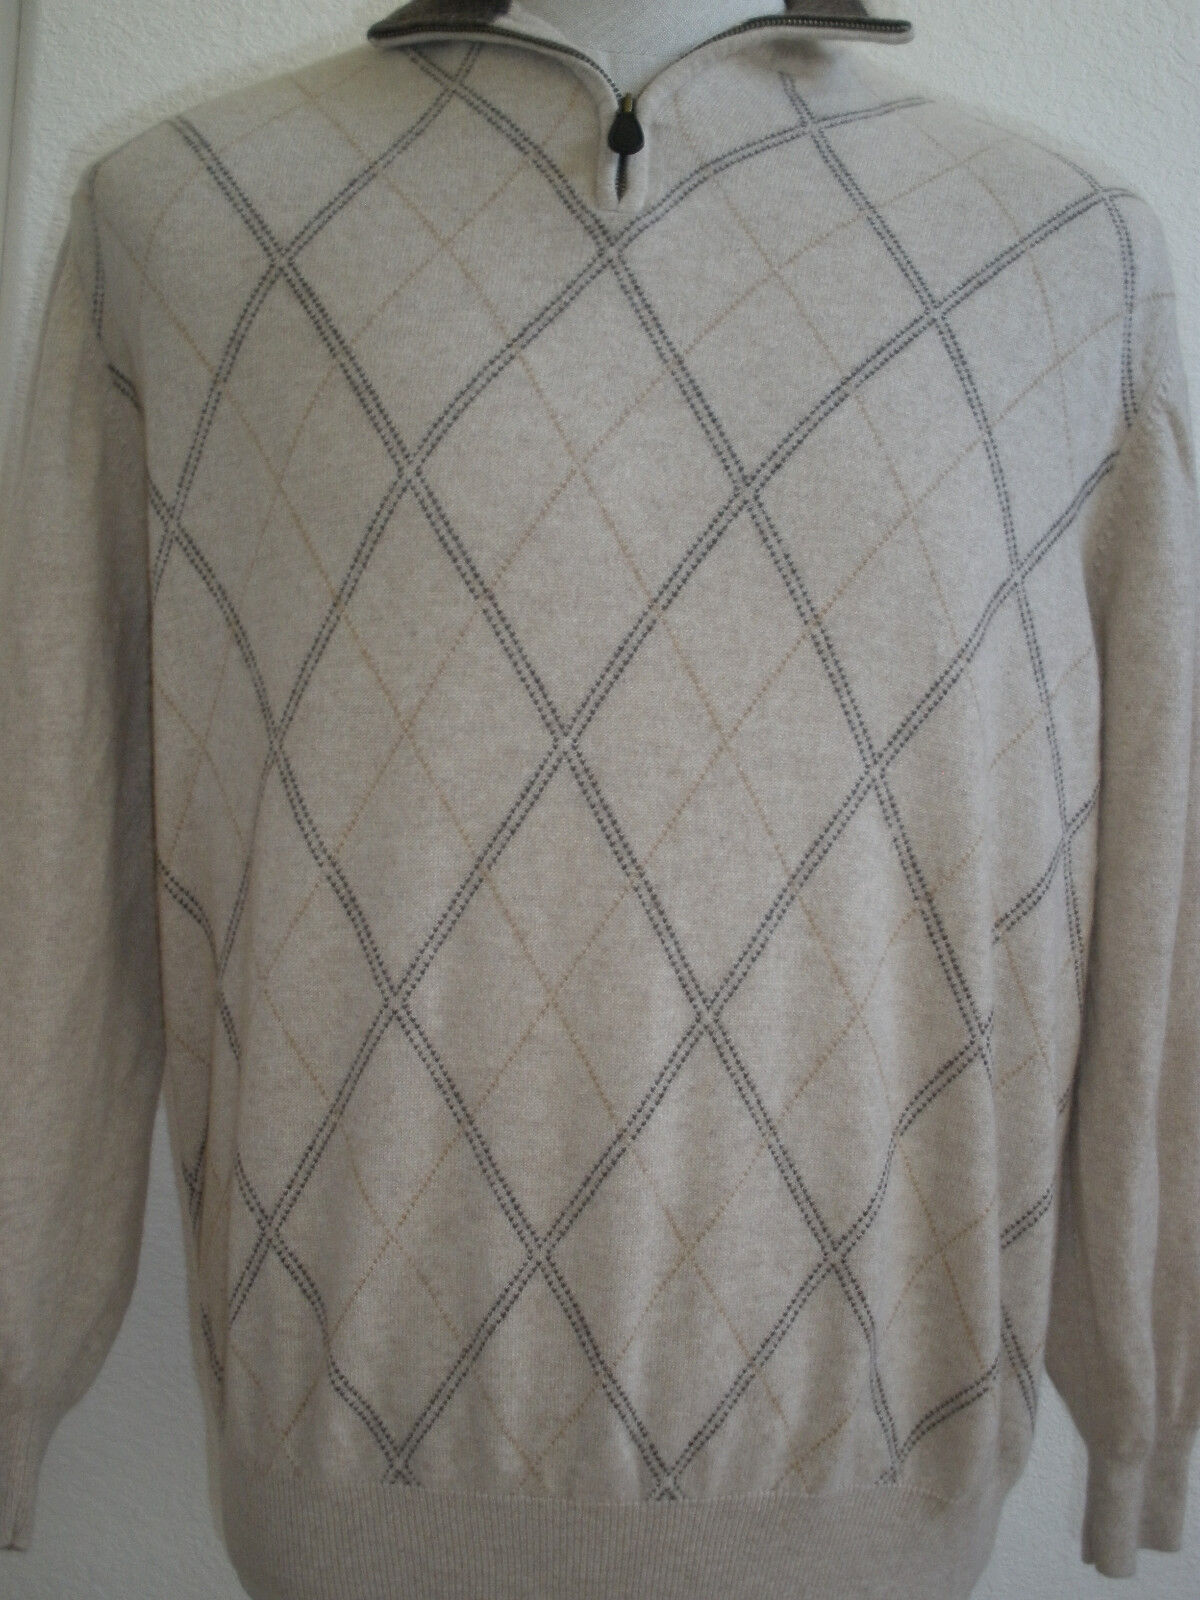 NORTHERN ISLES 2 PLY 100% Cashmere sweater  Größe XL HOT UNIQUE MUST HAVE